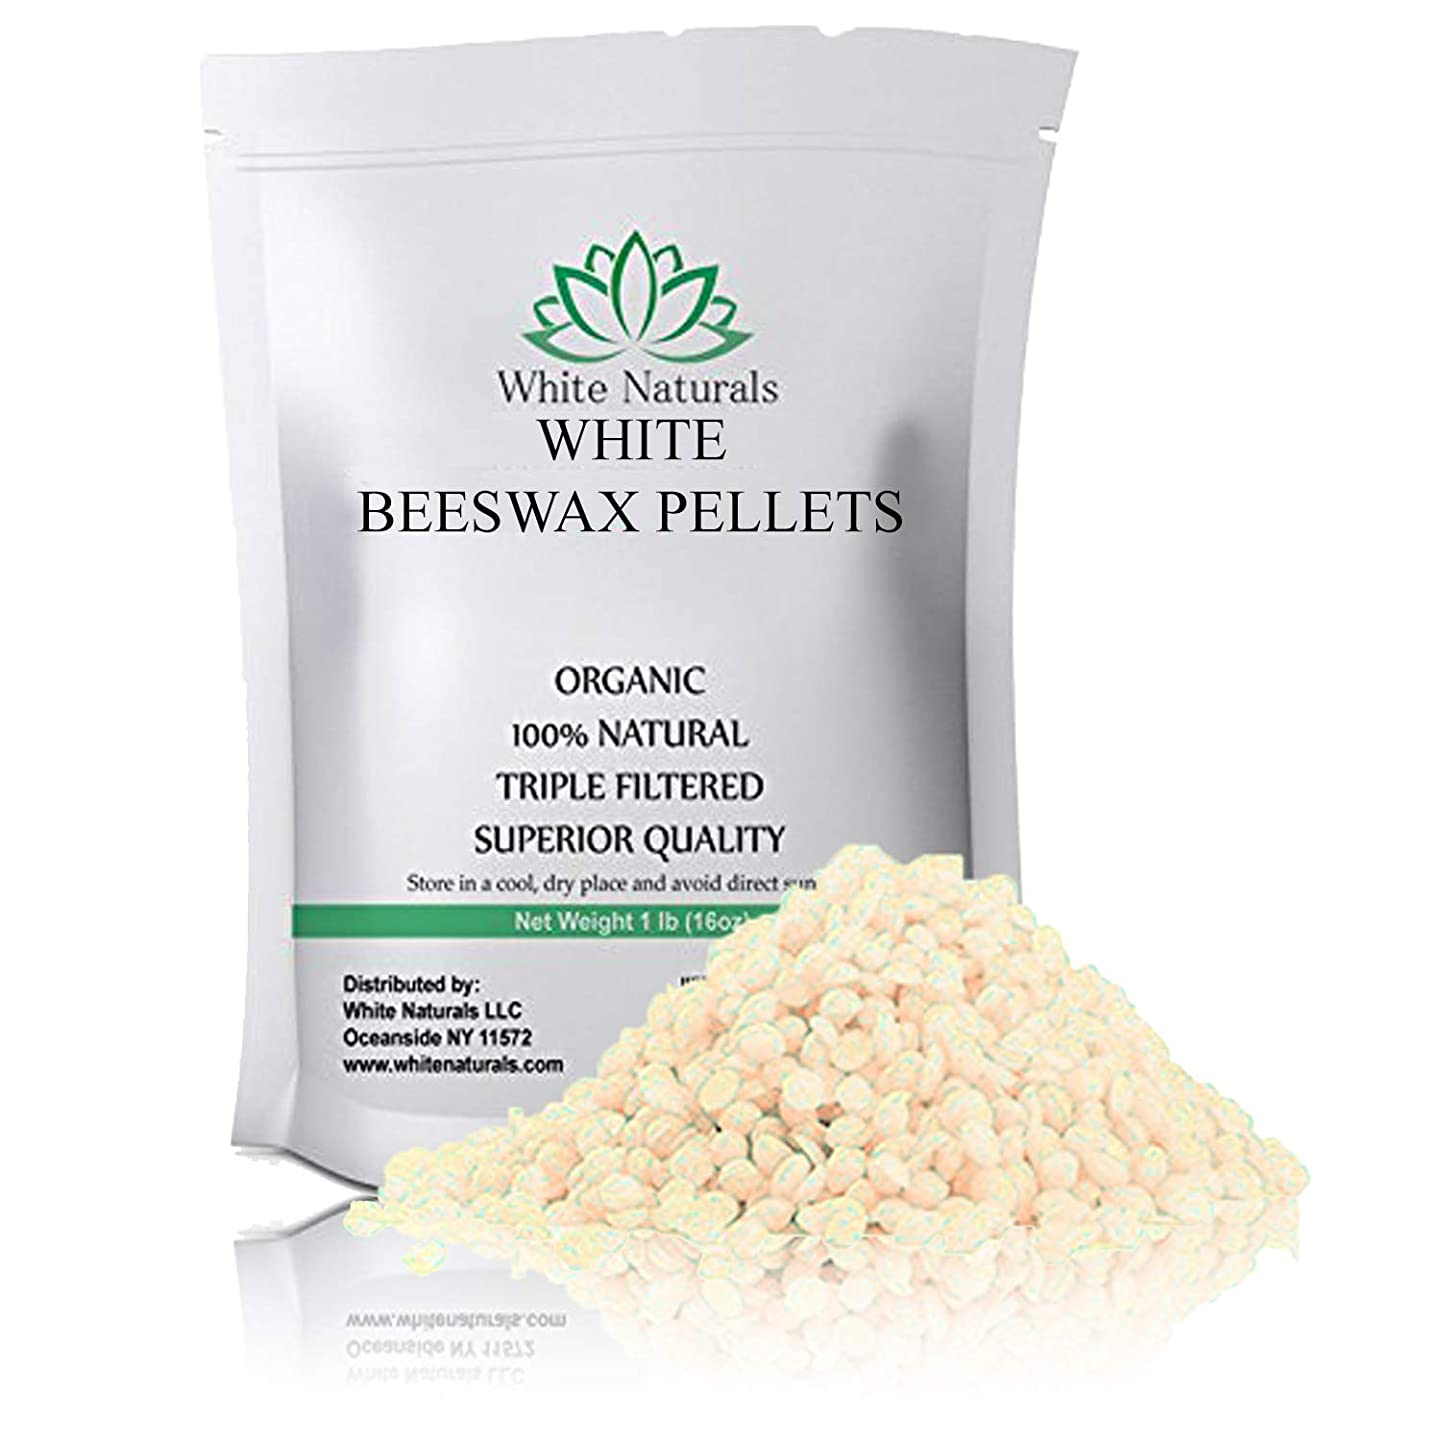 White Beeswax Pellets 8 oz, Pure, Natural, Cosmetic Grade, Top Quality Bees Wax Pastilles, Triple Filtered, Great For DIY Lip Balms, Lotions, Candles By White Naturals